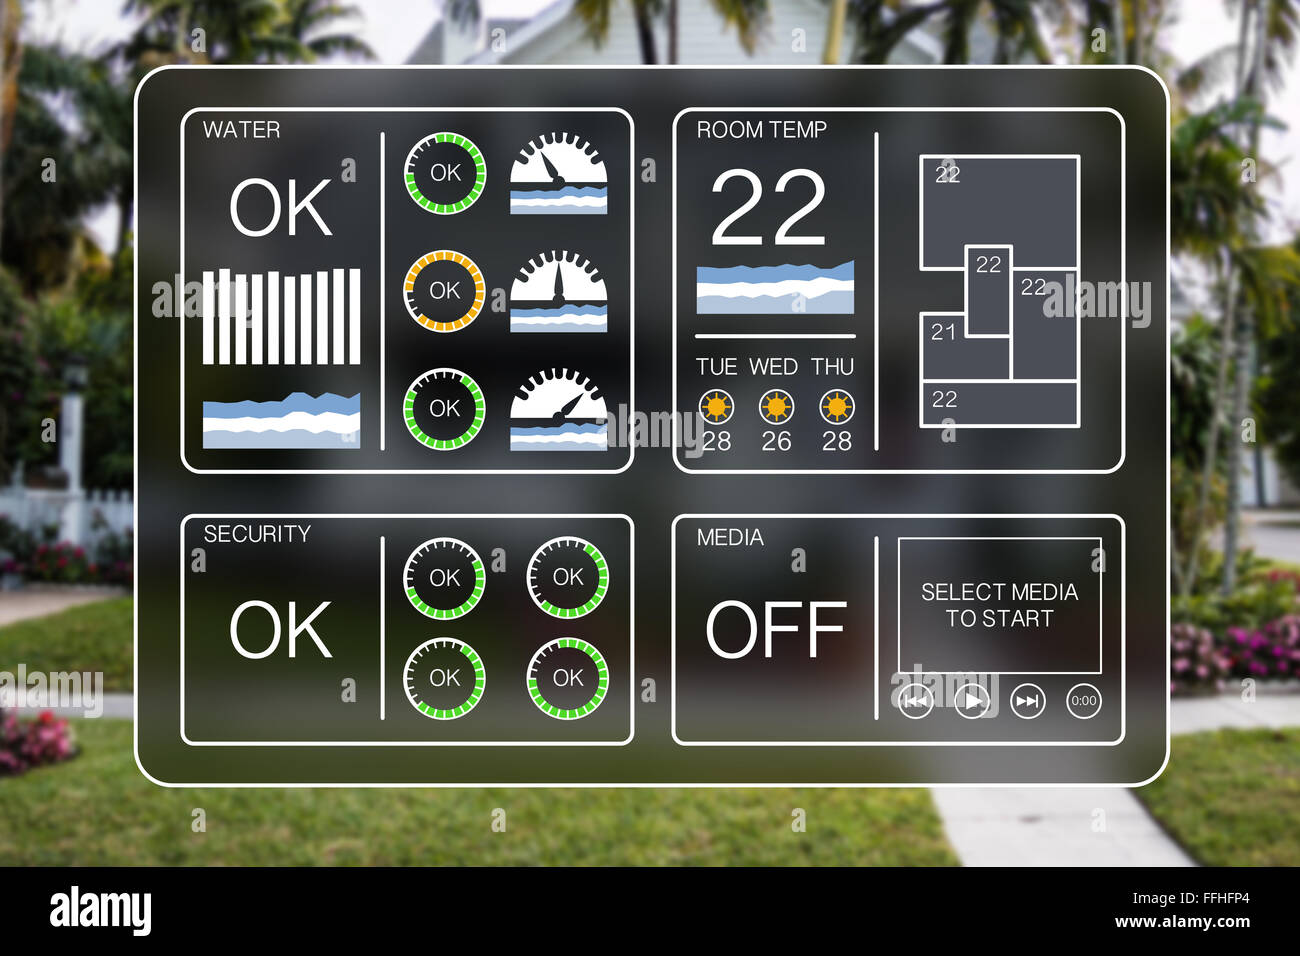 Flat design illustration of a home automation dashboard - Stock Image